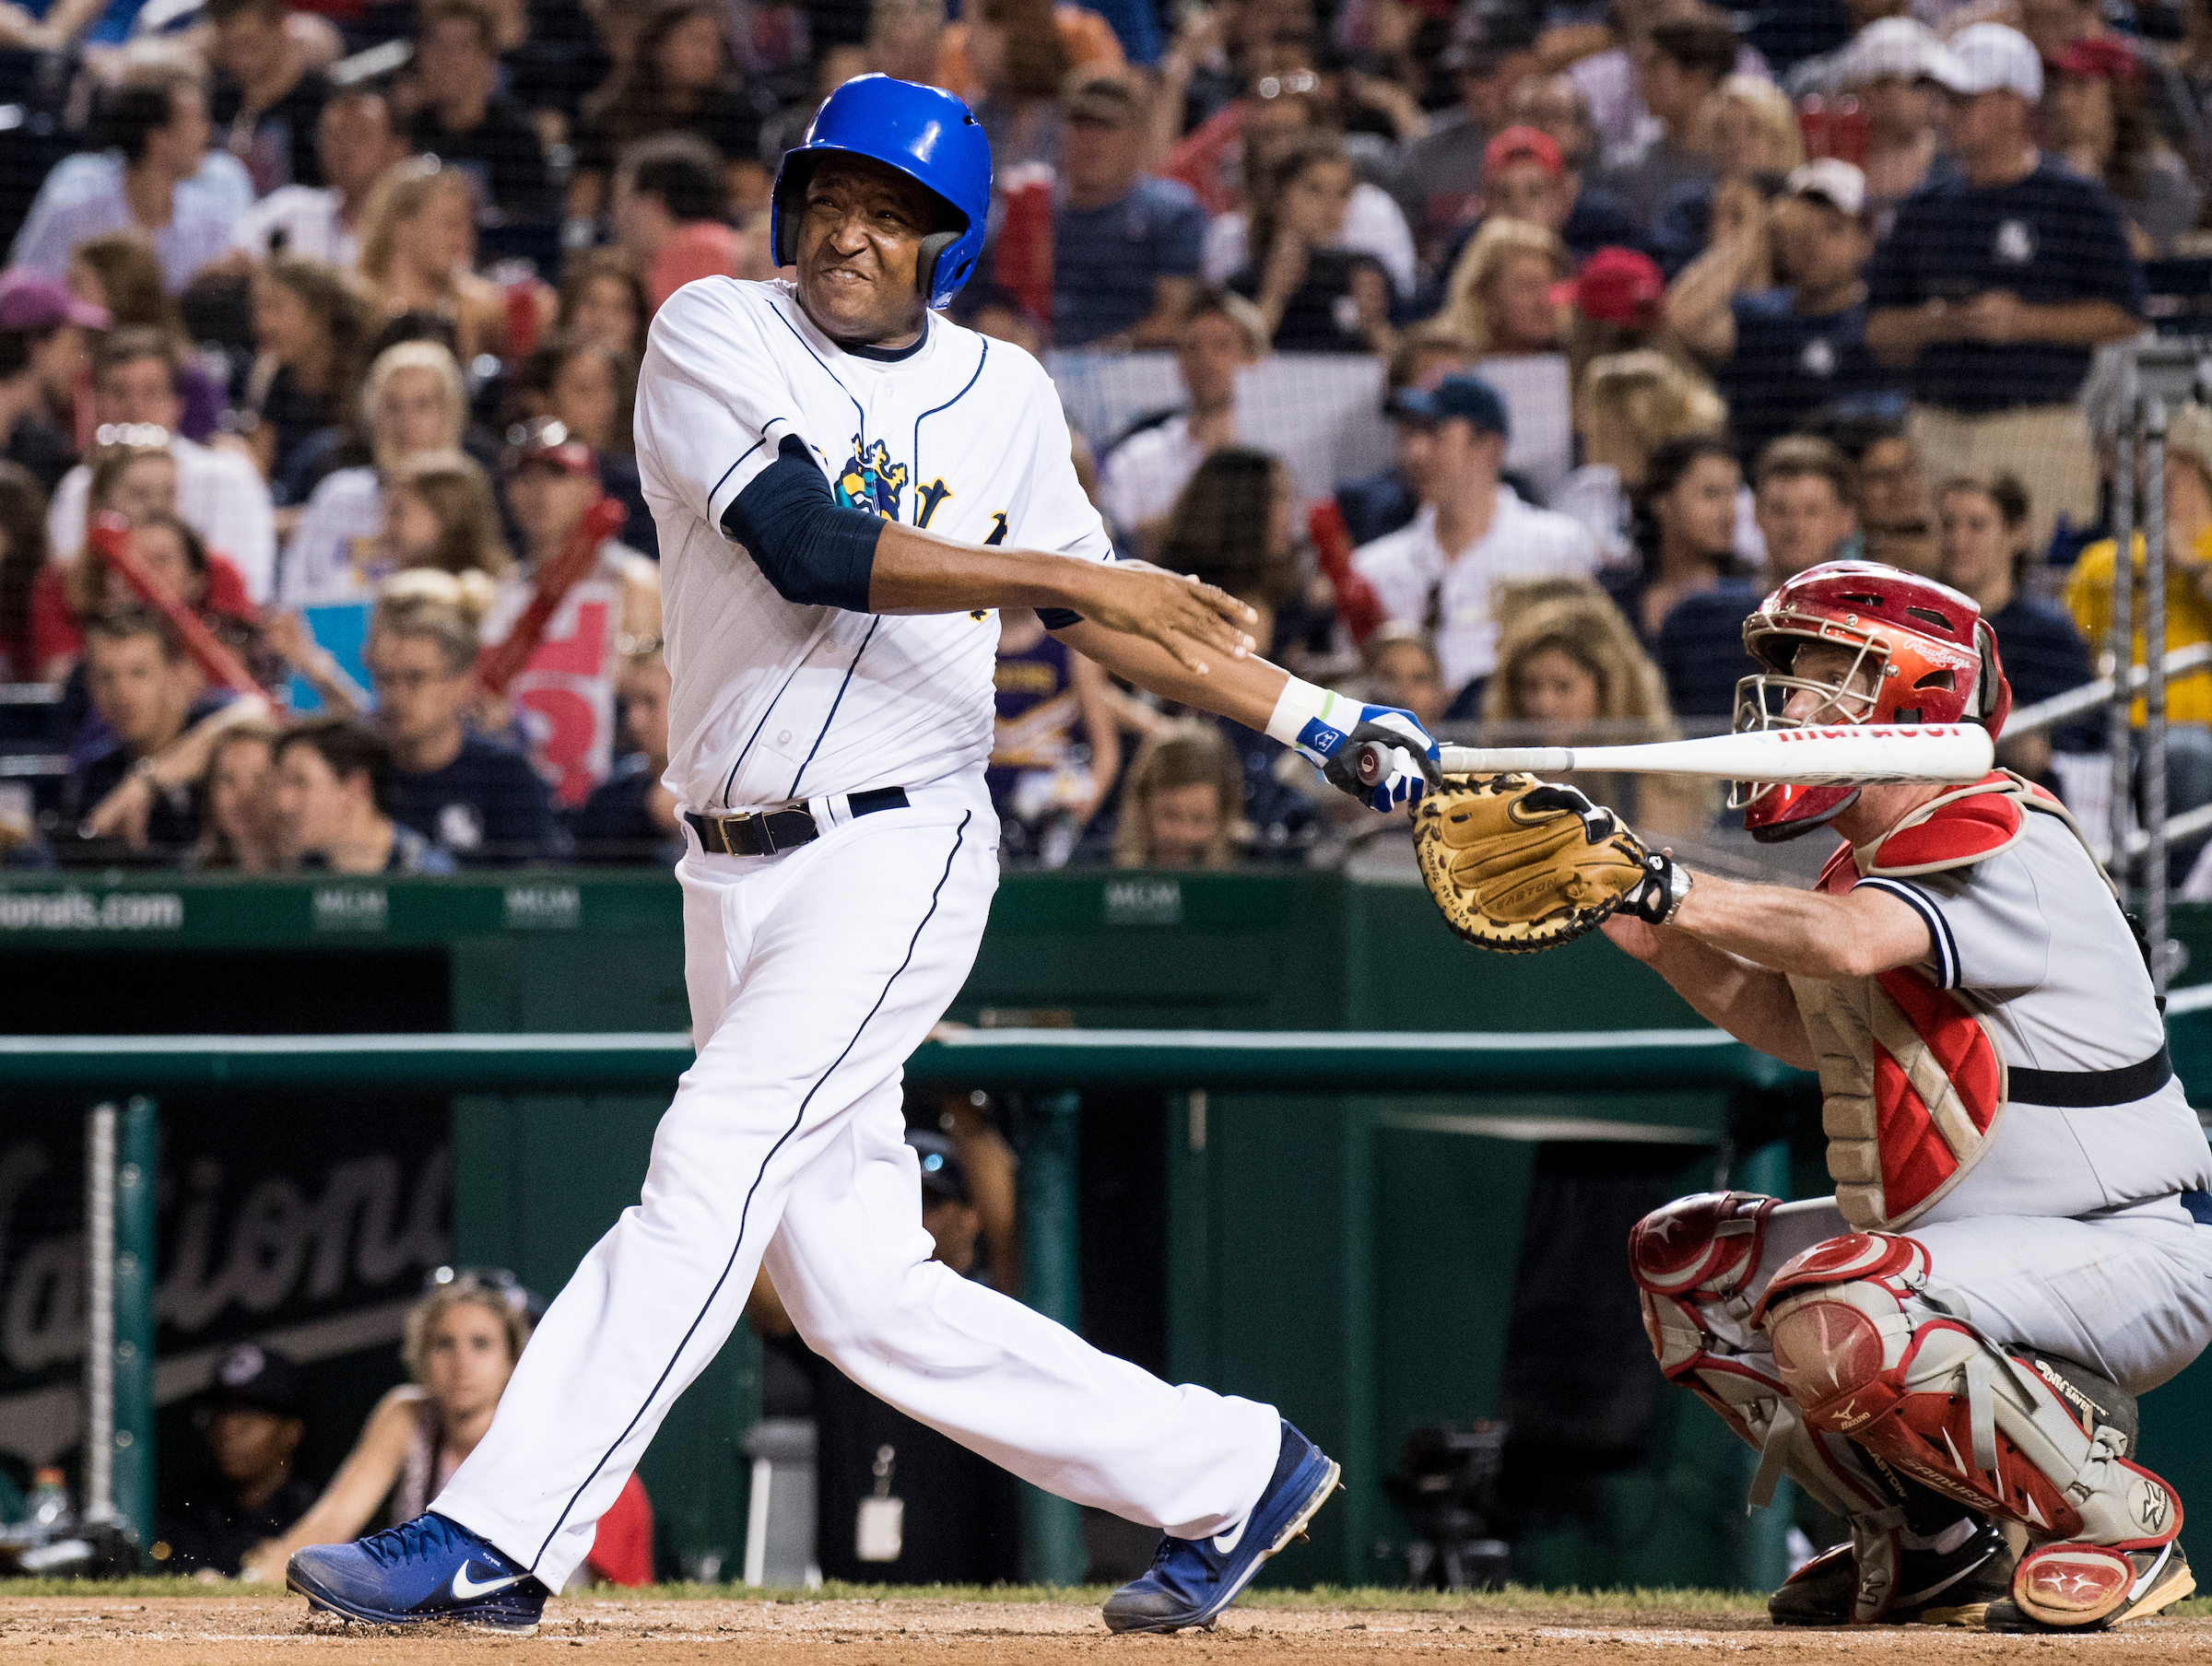 Rep. Cedric Richmond, D-La., takes a swing during the annual Congressional Baseball Game at Nationals Park in Washington on Thursday. (Bill Clark/CQ Roll Call)